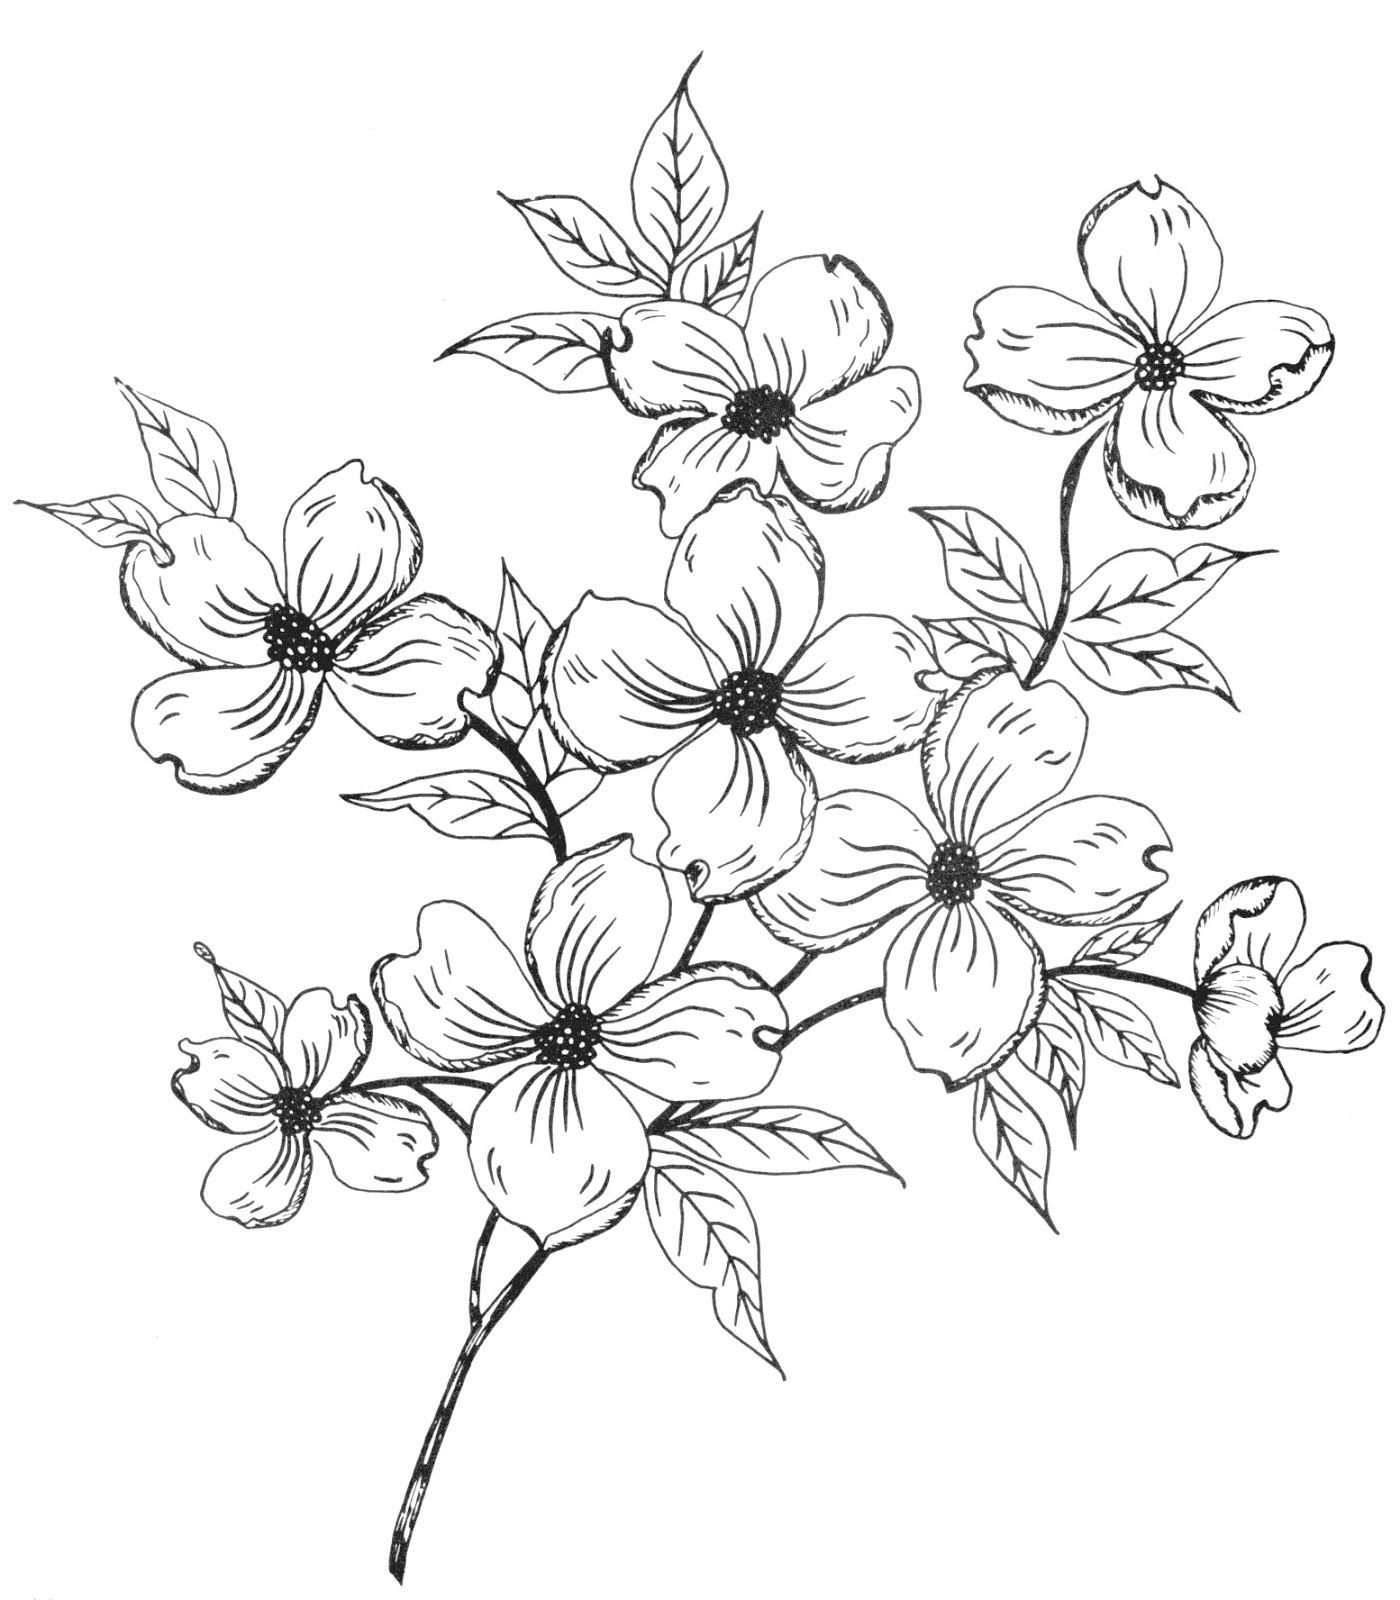 Dogwood Coloring Page At Getdrawings Free Download